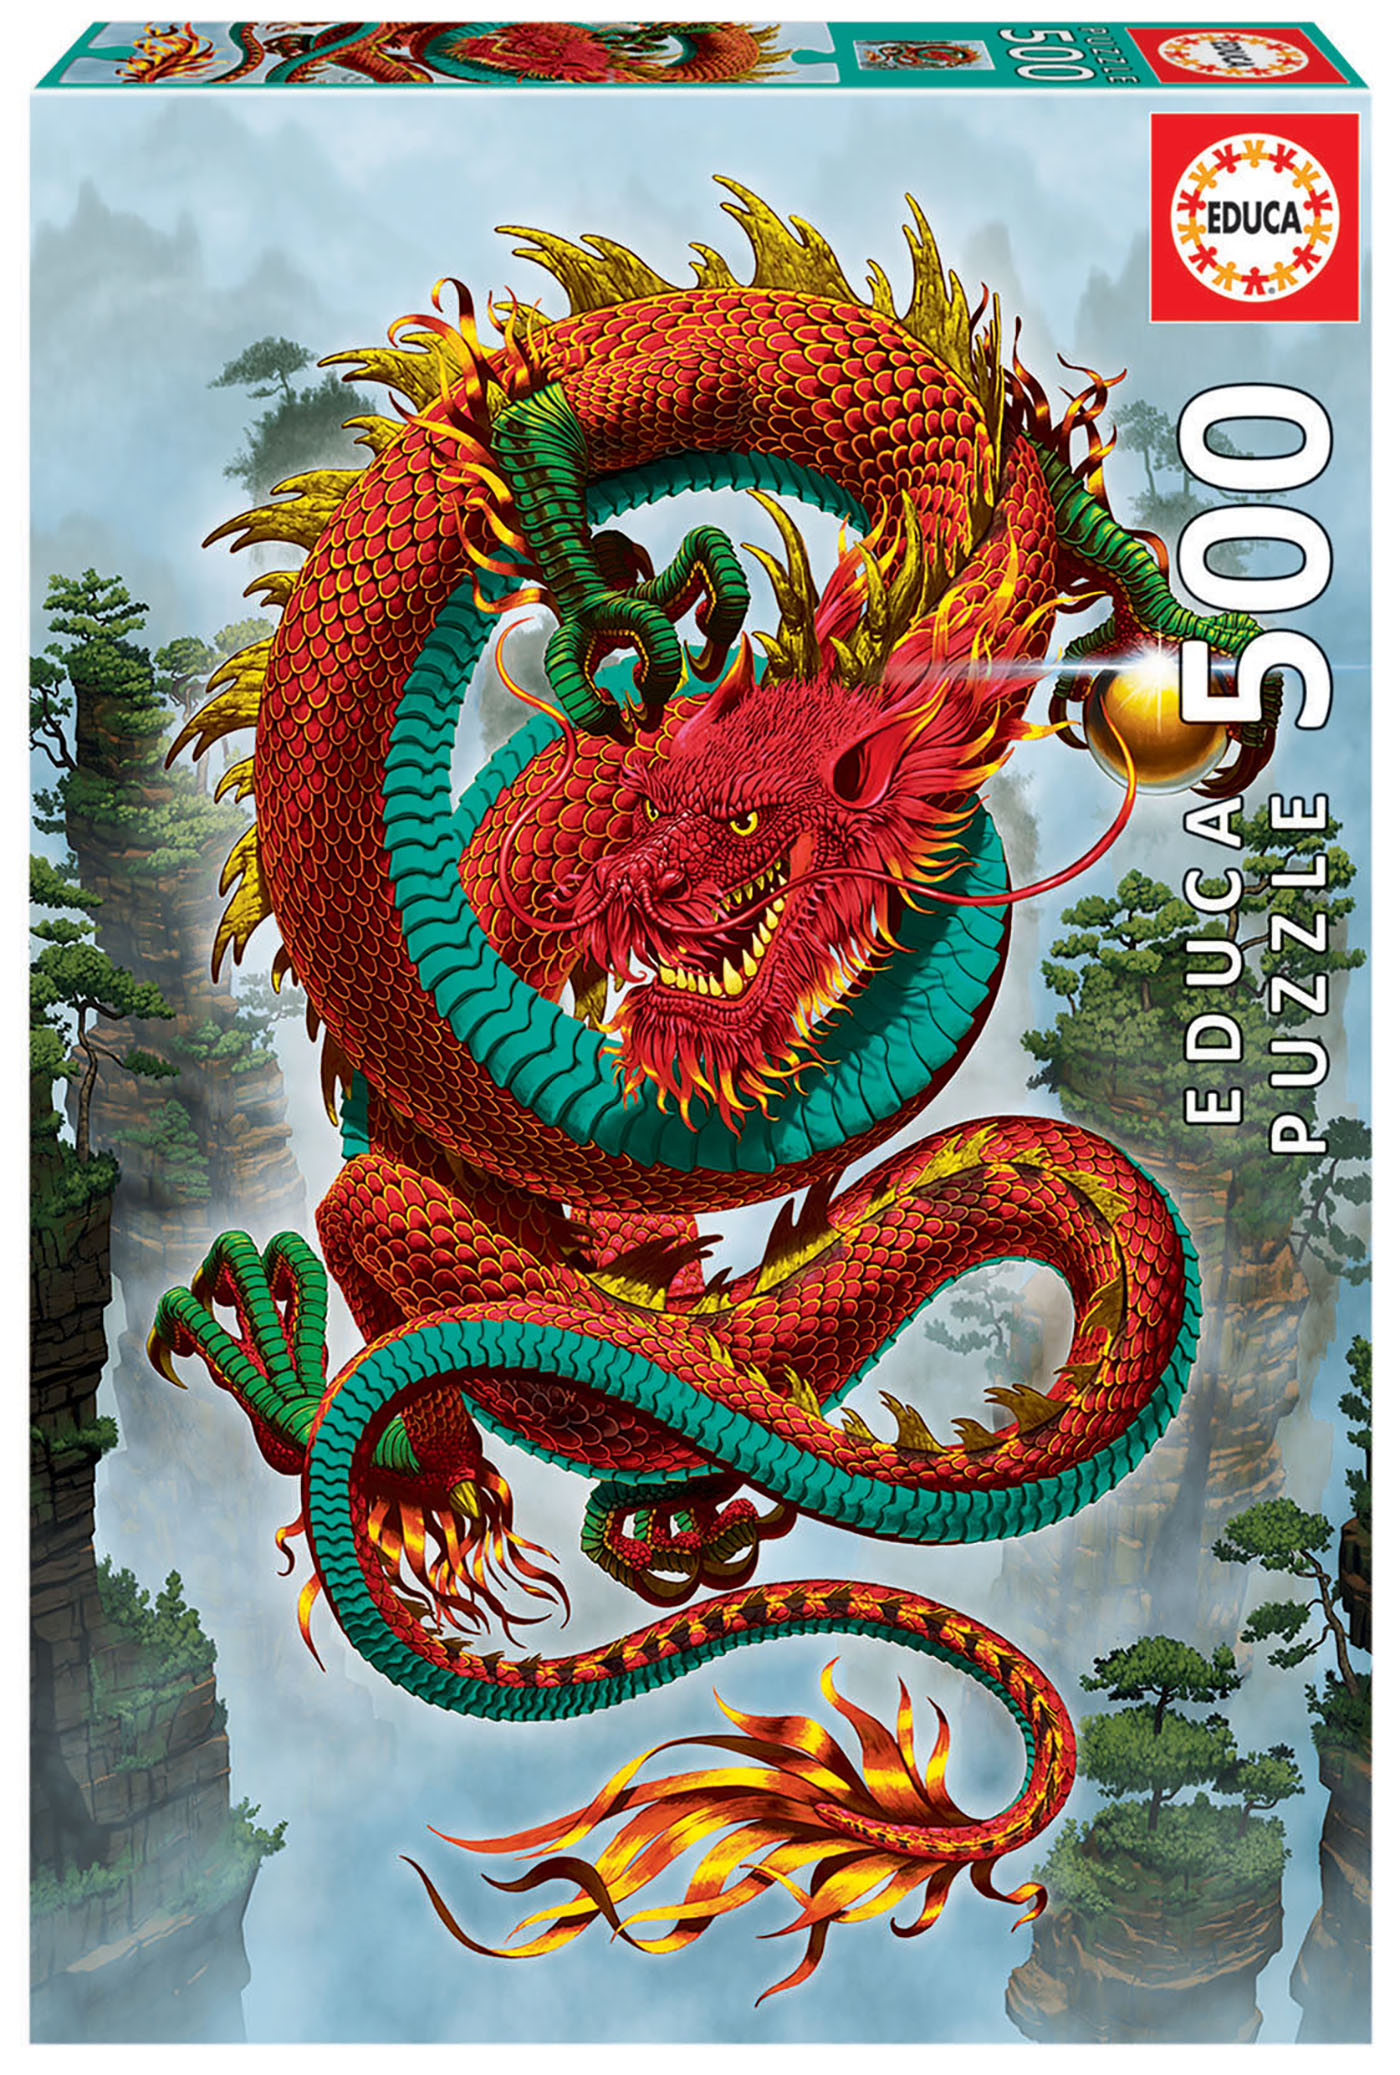 500 Le Dragon de la bonne fortune, Vincent Hie